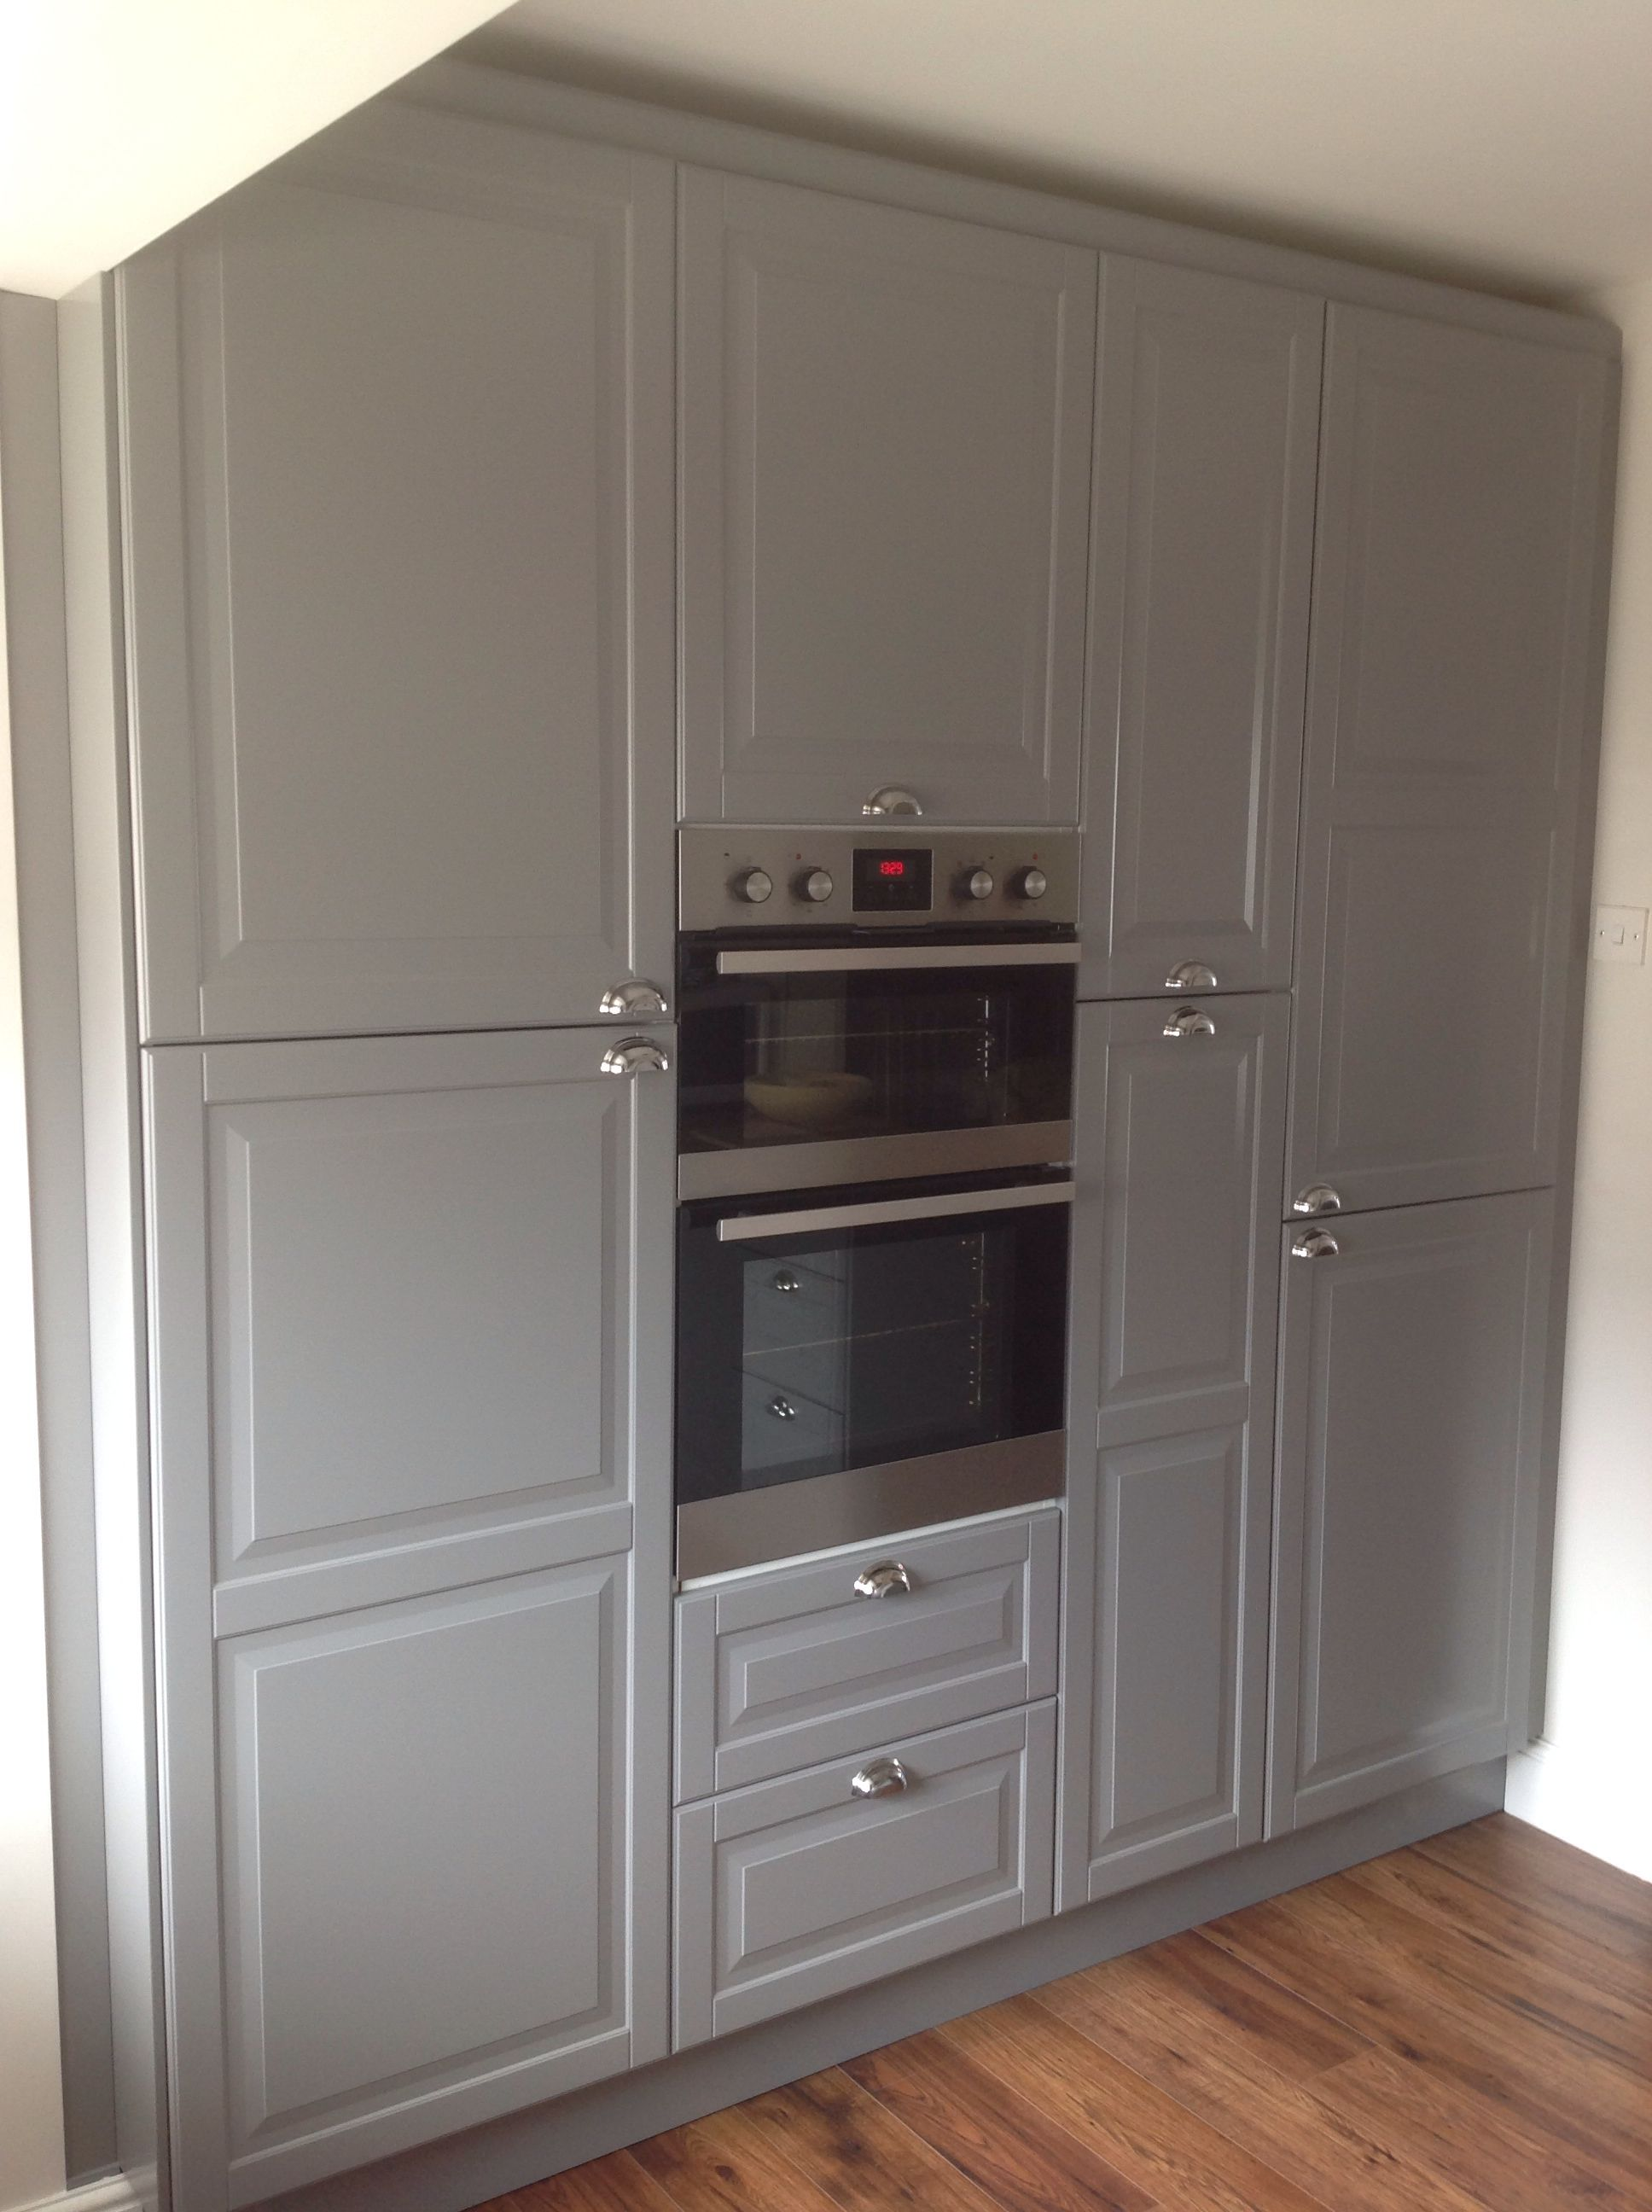 Full Wall Cupboards From Ikea Love The Grey Colour Wall Cupboards Kitchen Cupboard